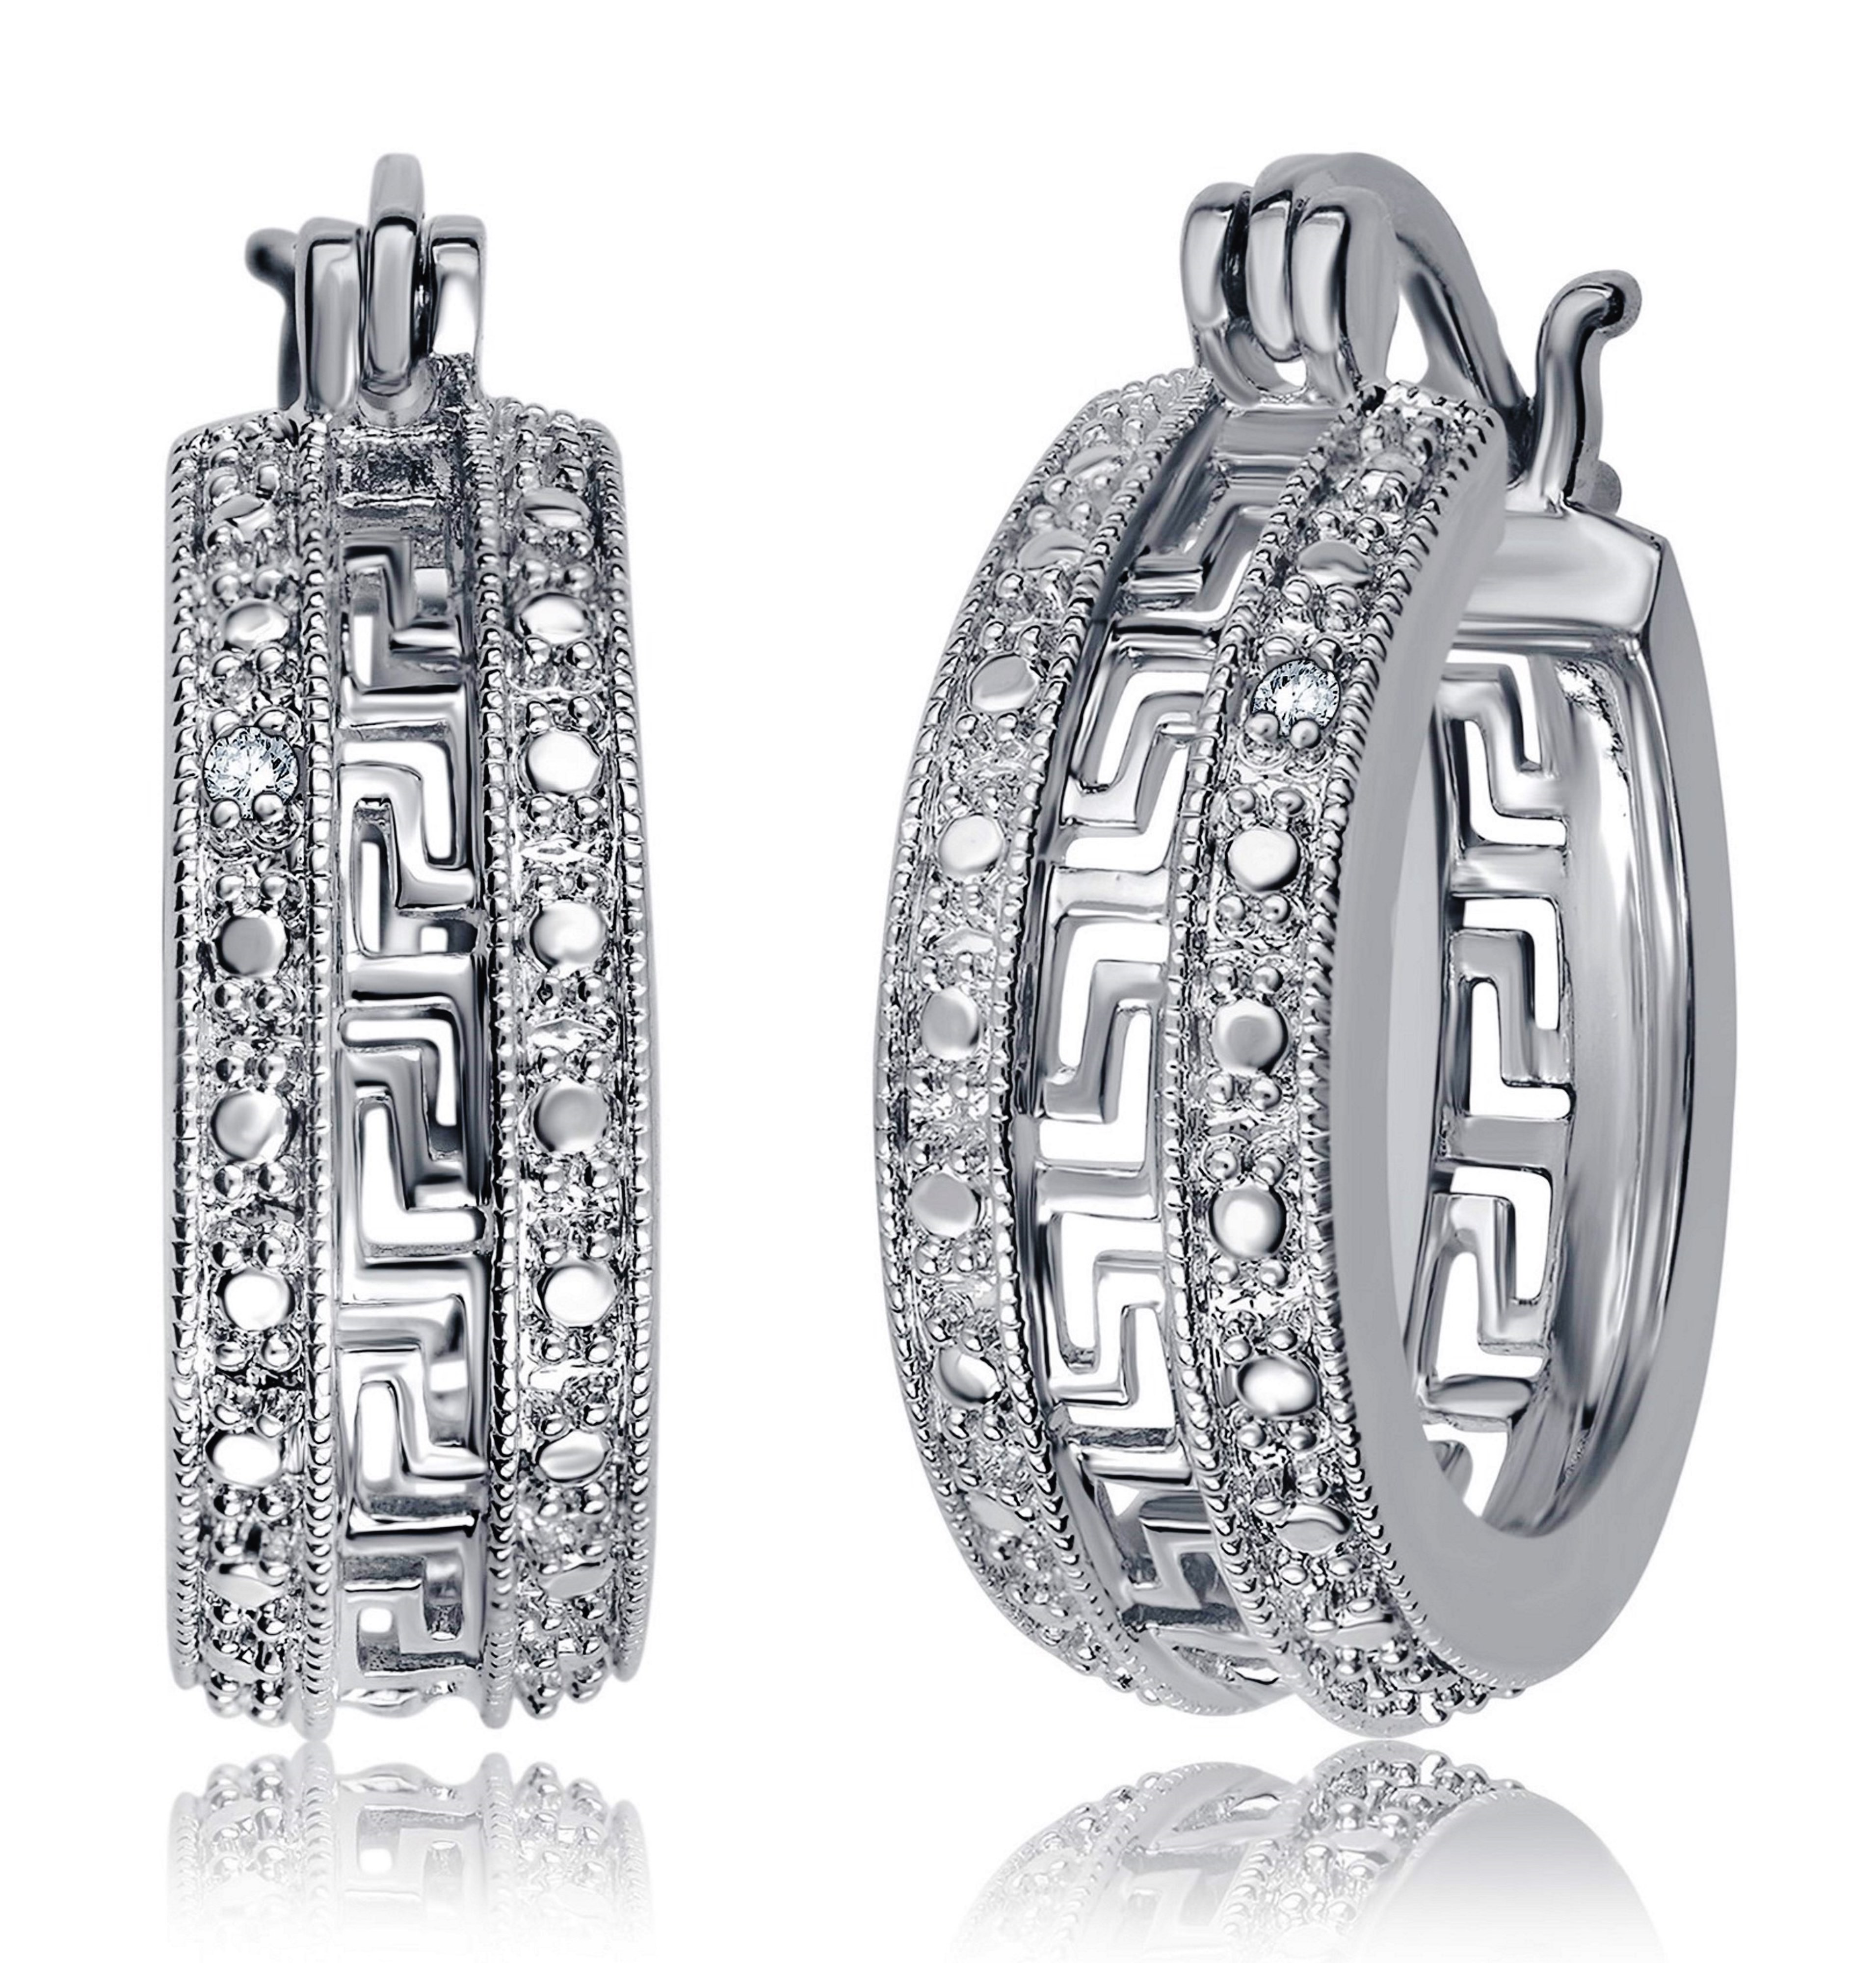 Genuine  0.02 Carat Natural Diamond Accent Greek Key Hoop Earrings  In 14K White Gold Plated